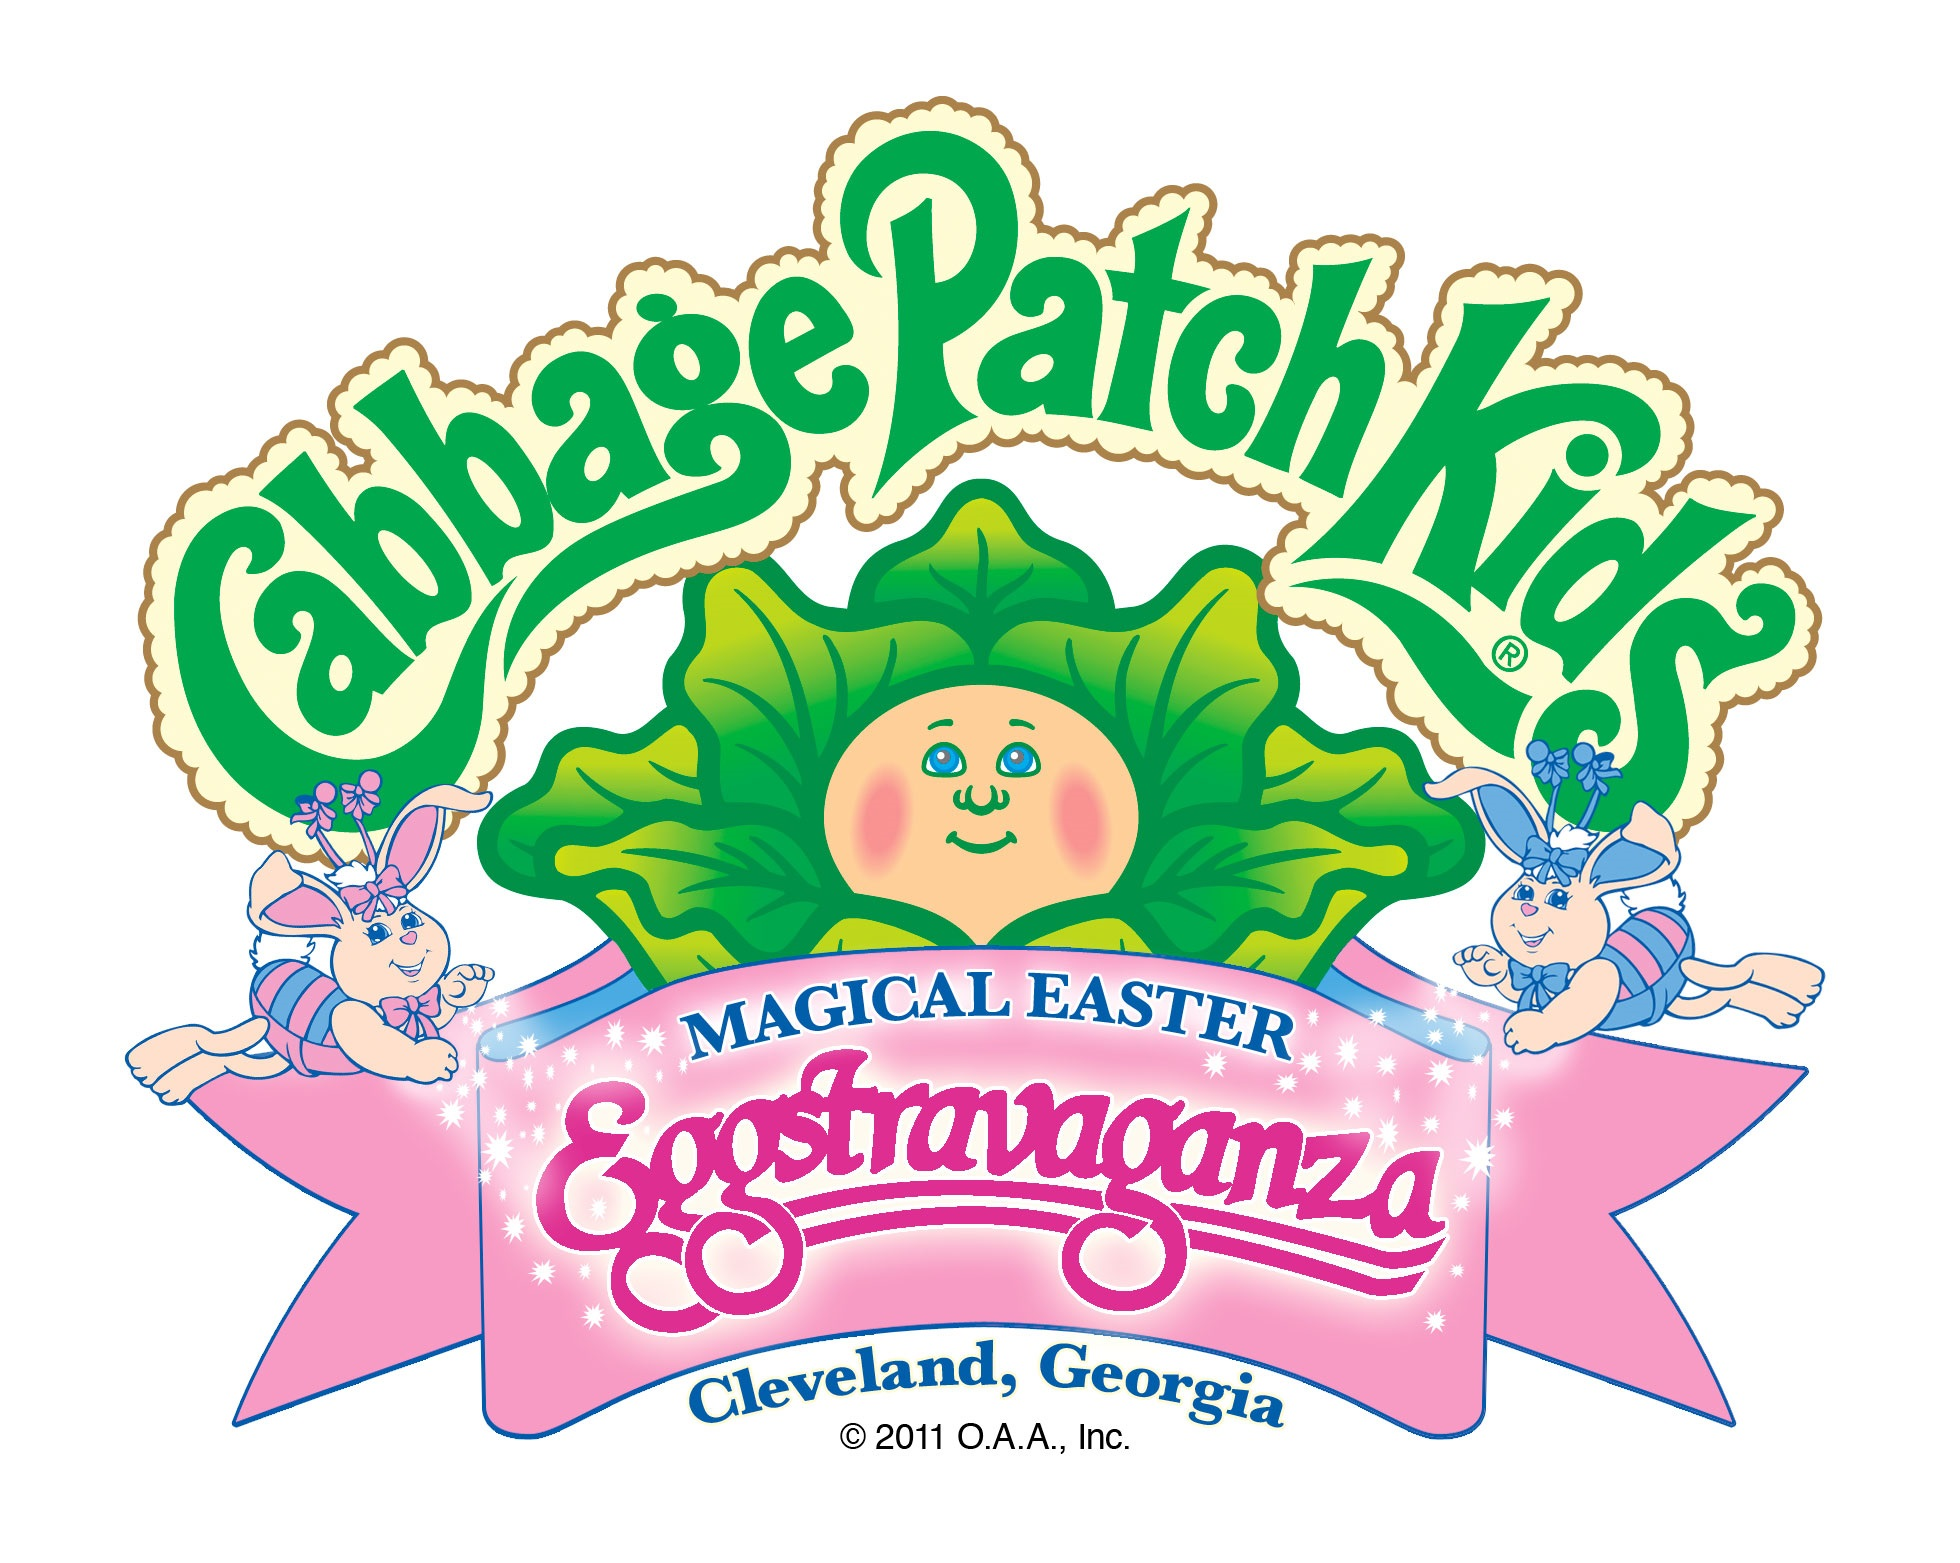 Welcome Spring at the 28th Annual Magical Easter Eggstravaganza!